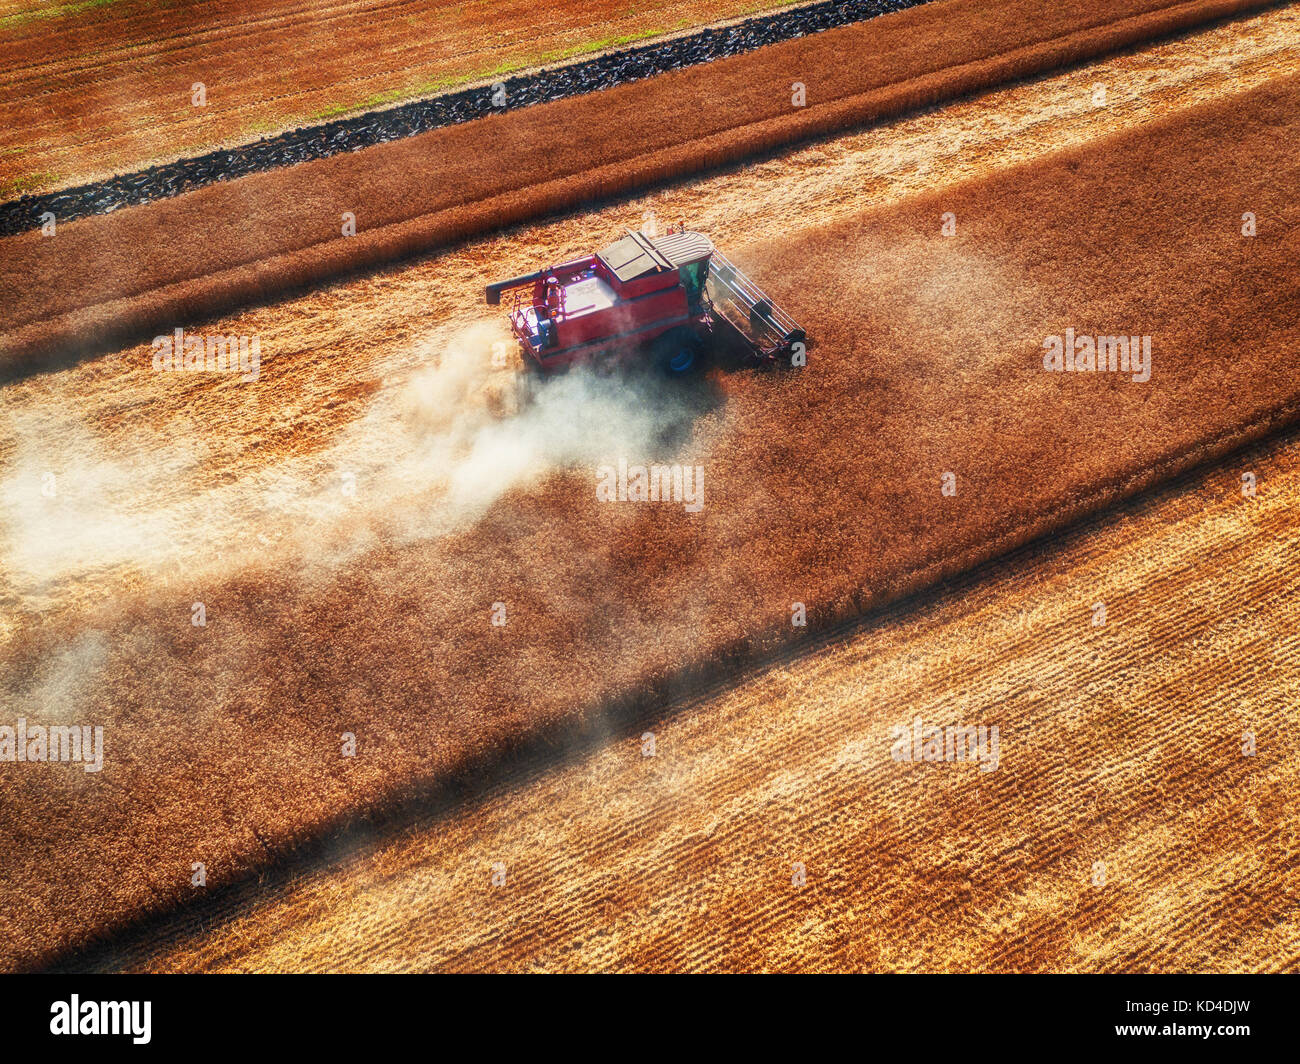 Aerial view of Combine harvester agriculture machine harvesting golden ripe wheat field - Stock Image